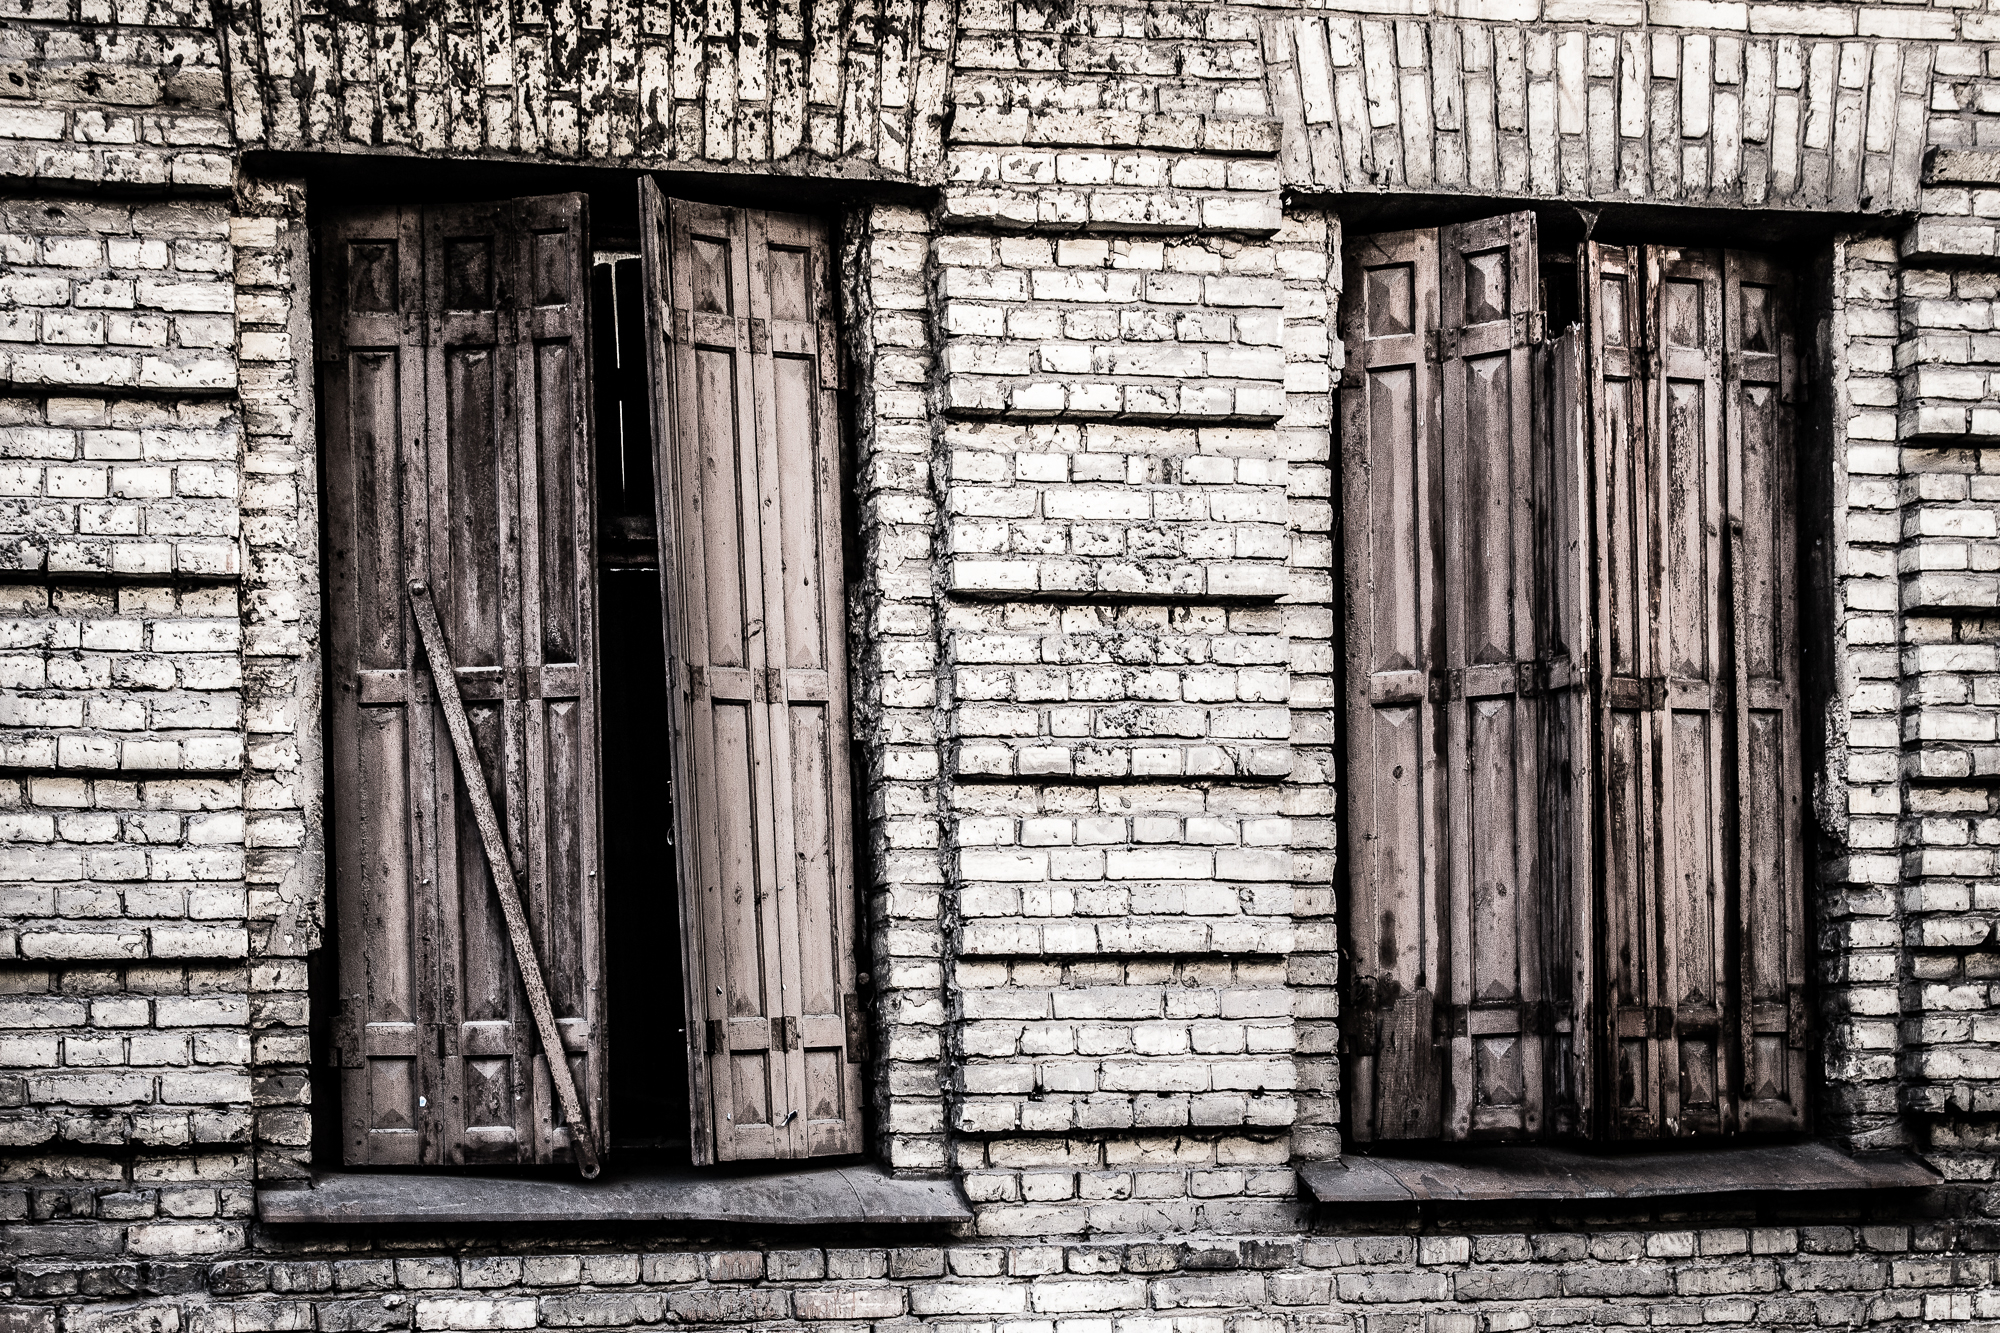 Windows Of Abandoned House Via @Atisgailis